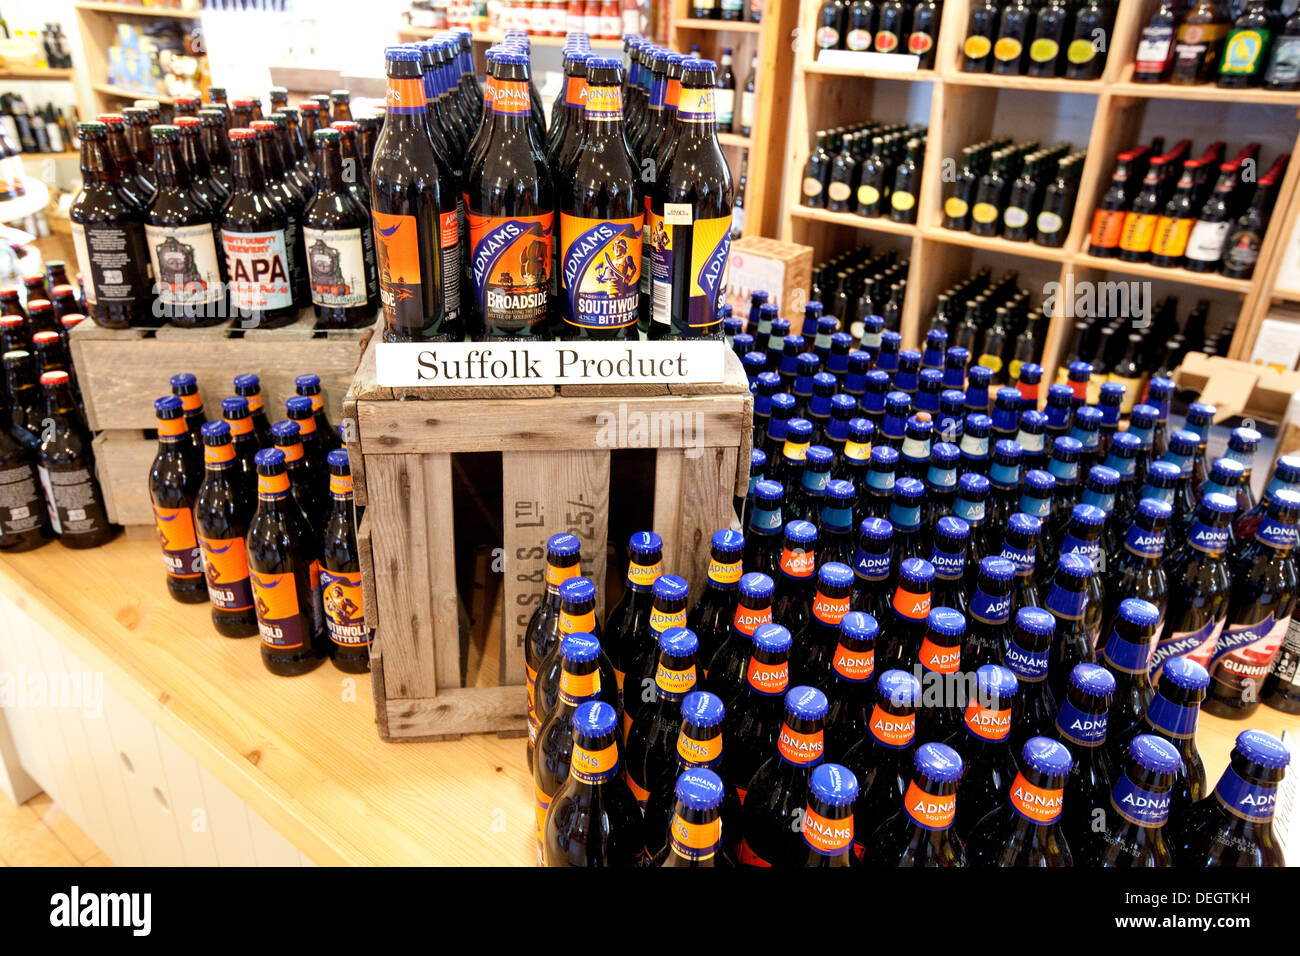 Local Produce - bottles of Adnams beer ale on sale, Snape Maltings store, Suffolk England UK - Stock Image